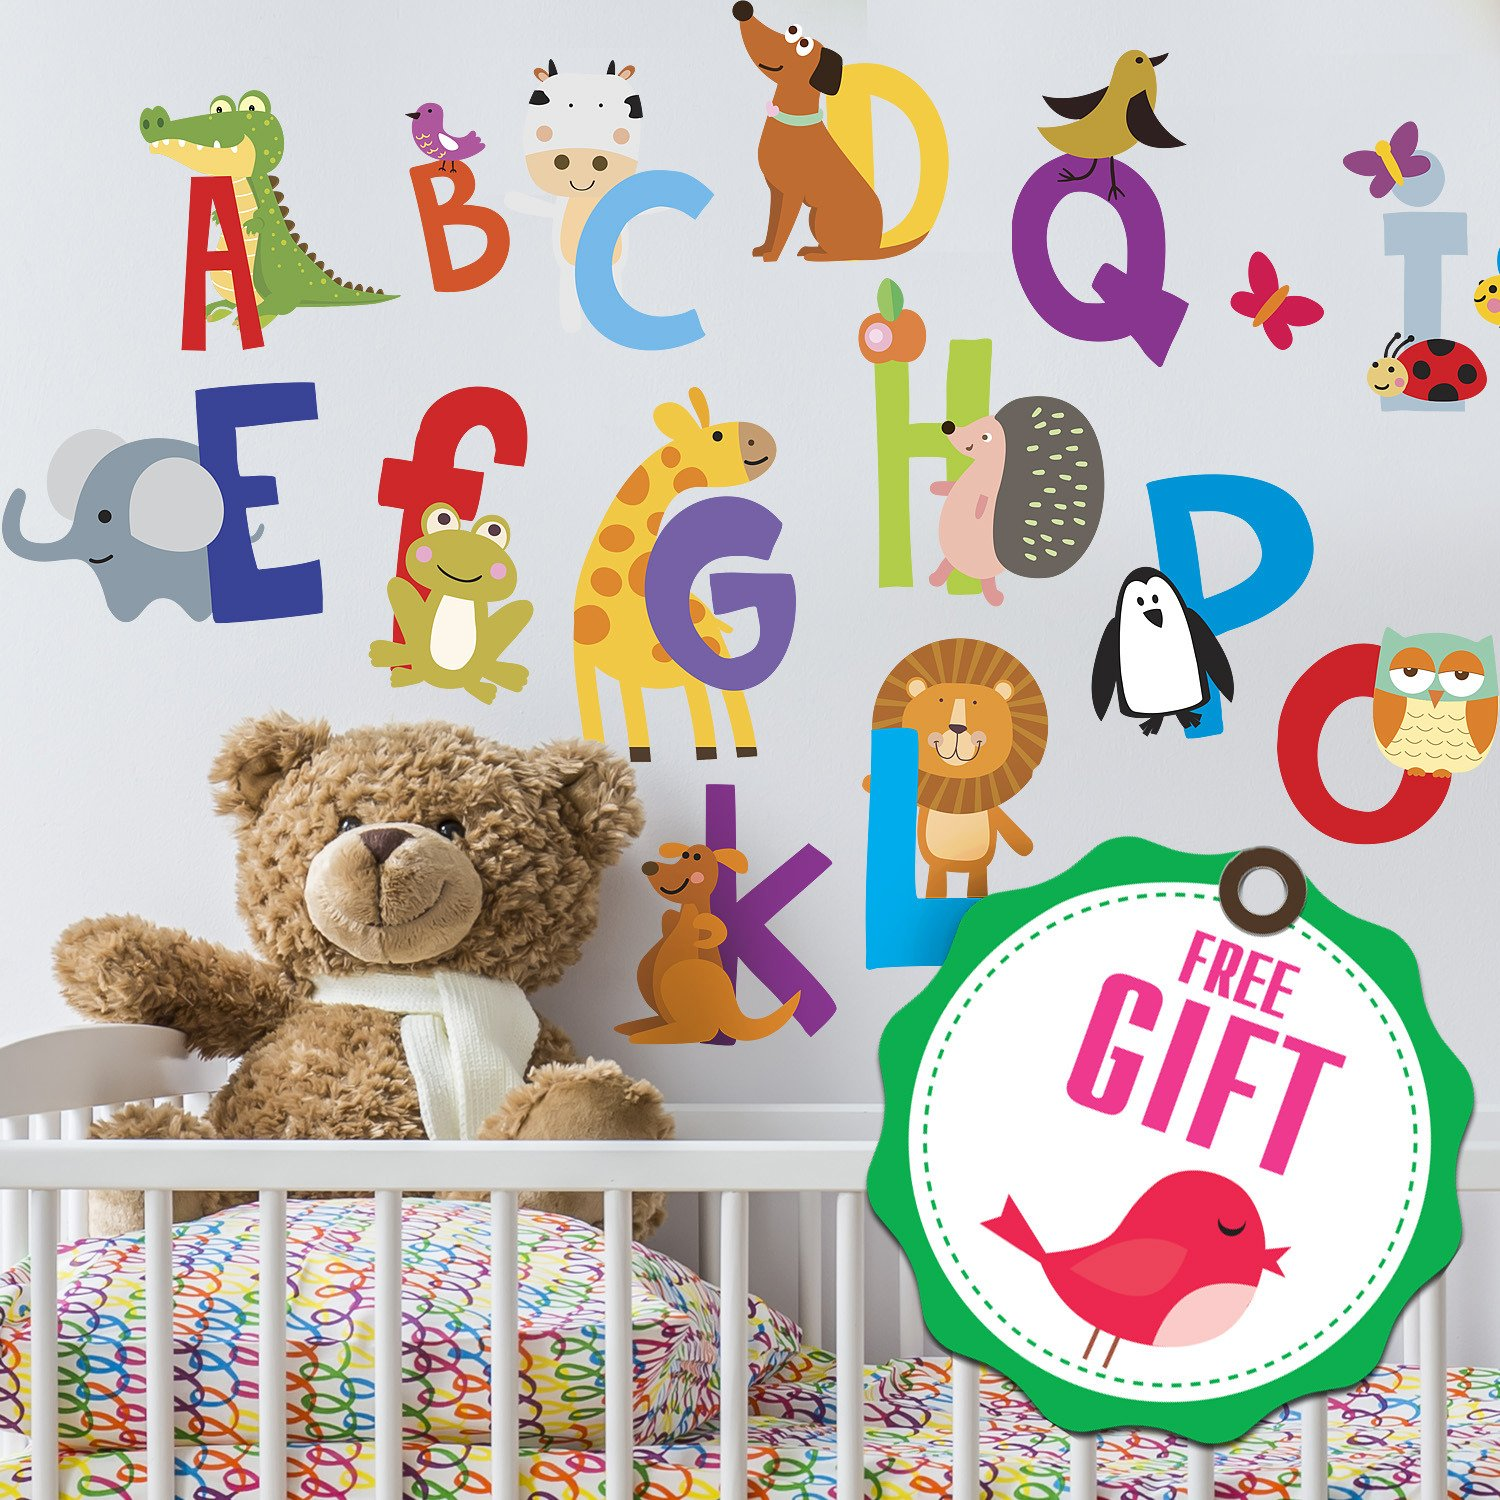 Thejamtart Colouring Book likewise Ejkcqz Pl Sy Ql besides Tree Dinosaur Wall Stickers X in addition Ds White as well Dw W. on colourful animal alphabet wall stickers